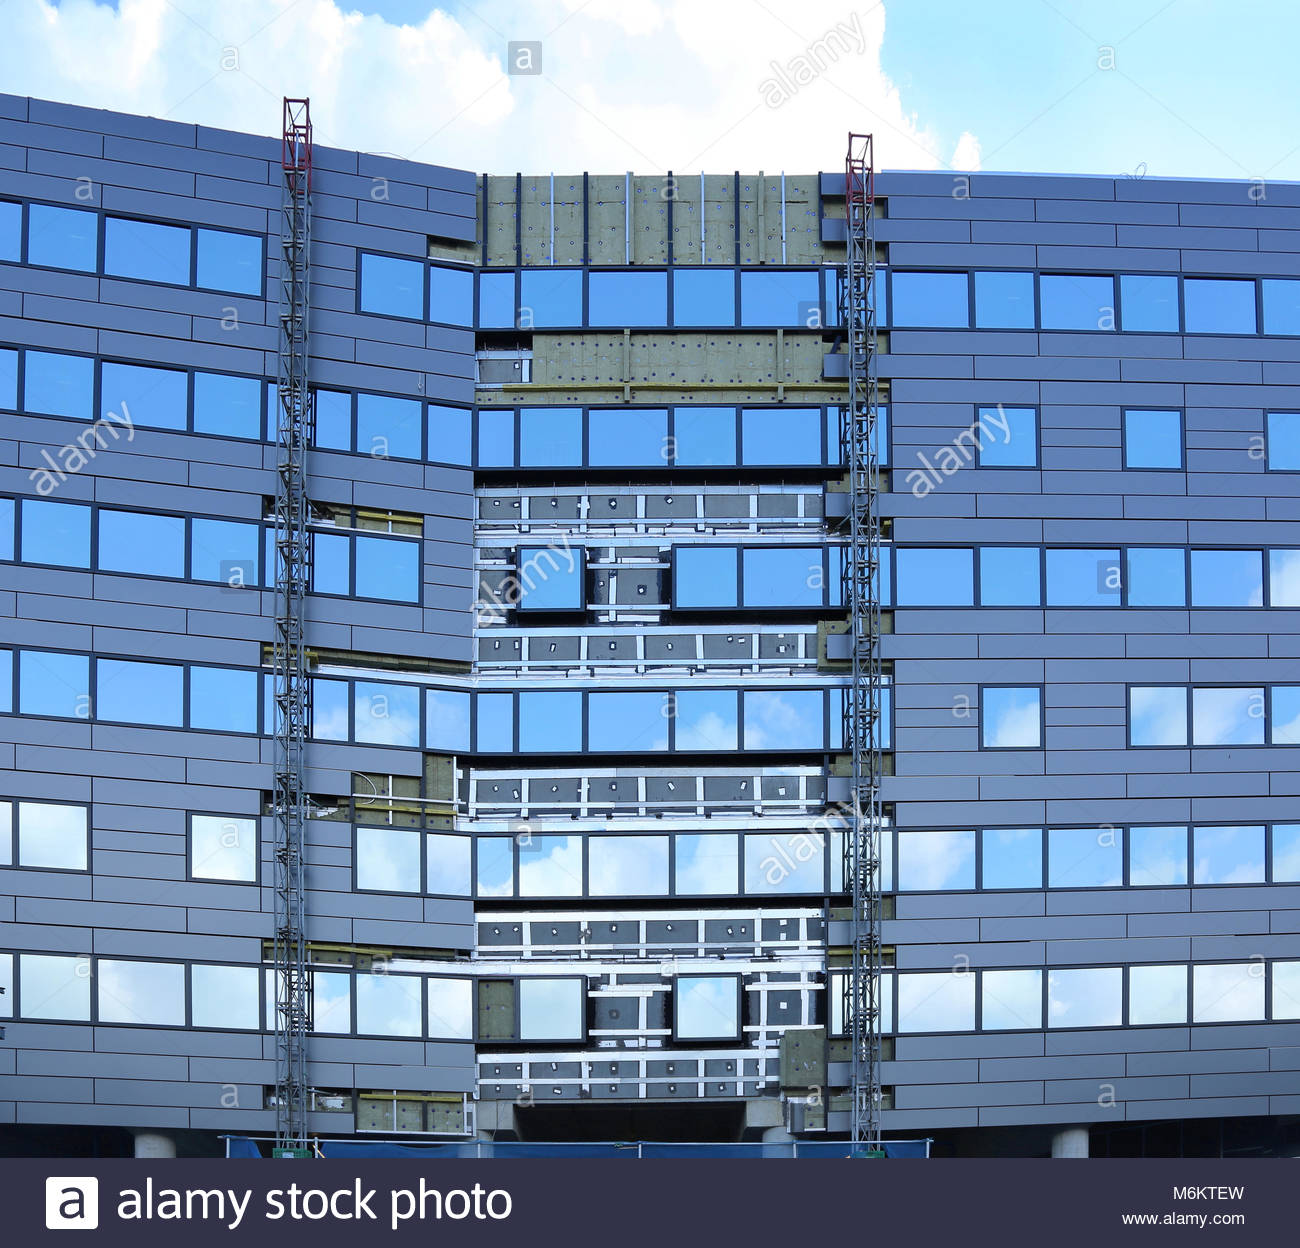 The new Crowne Plaza Hotel under construction at Heathrow Airport London. Shows steel cladding panels placed over - Stock Image